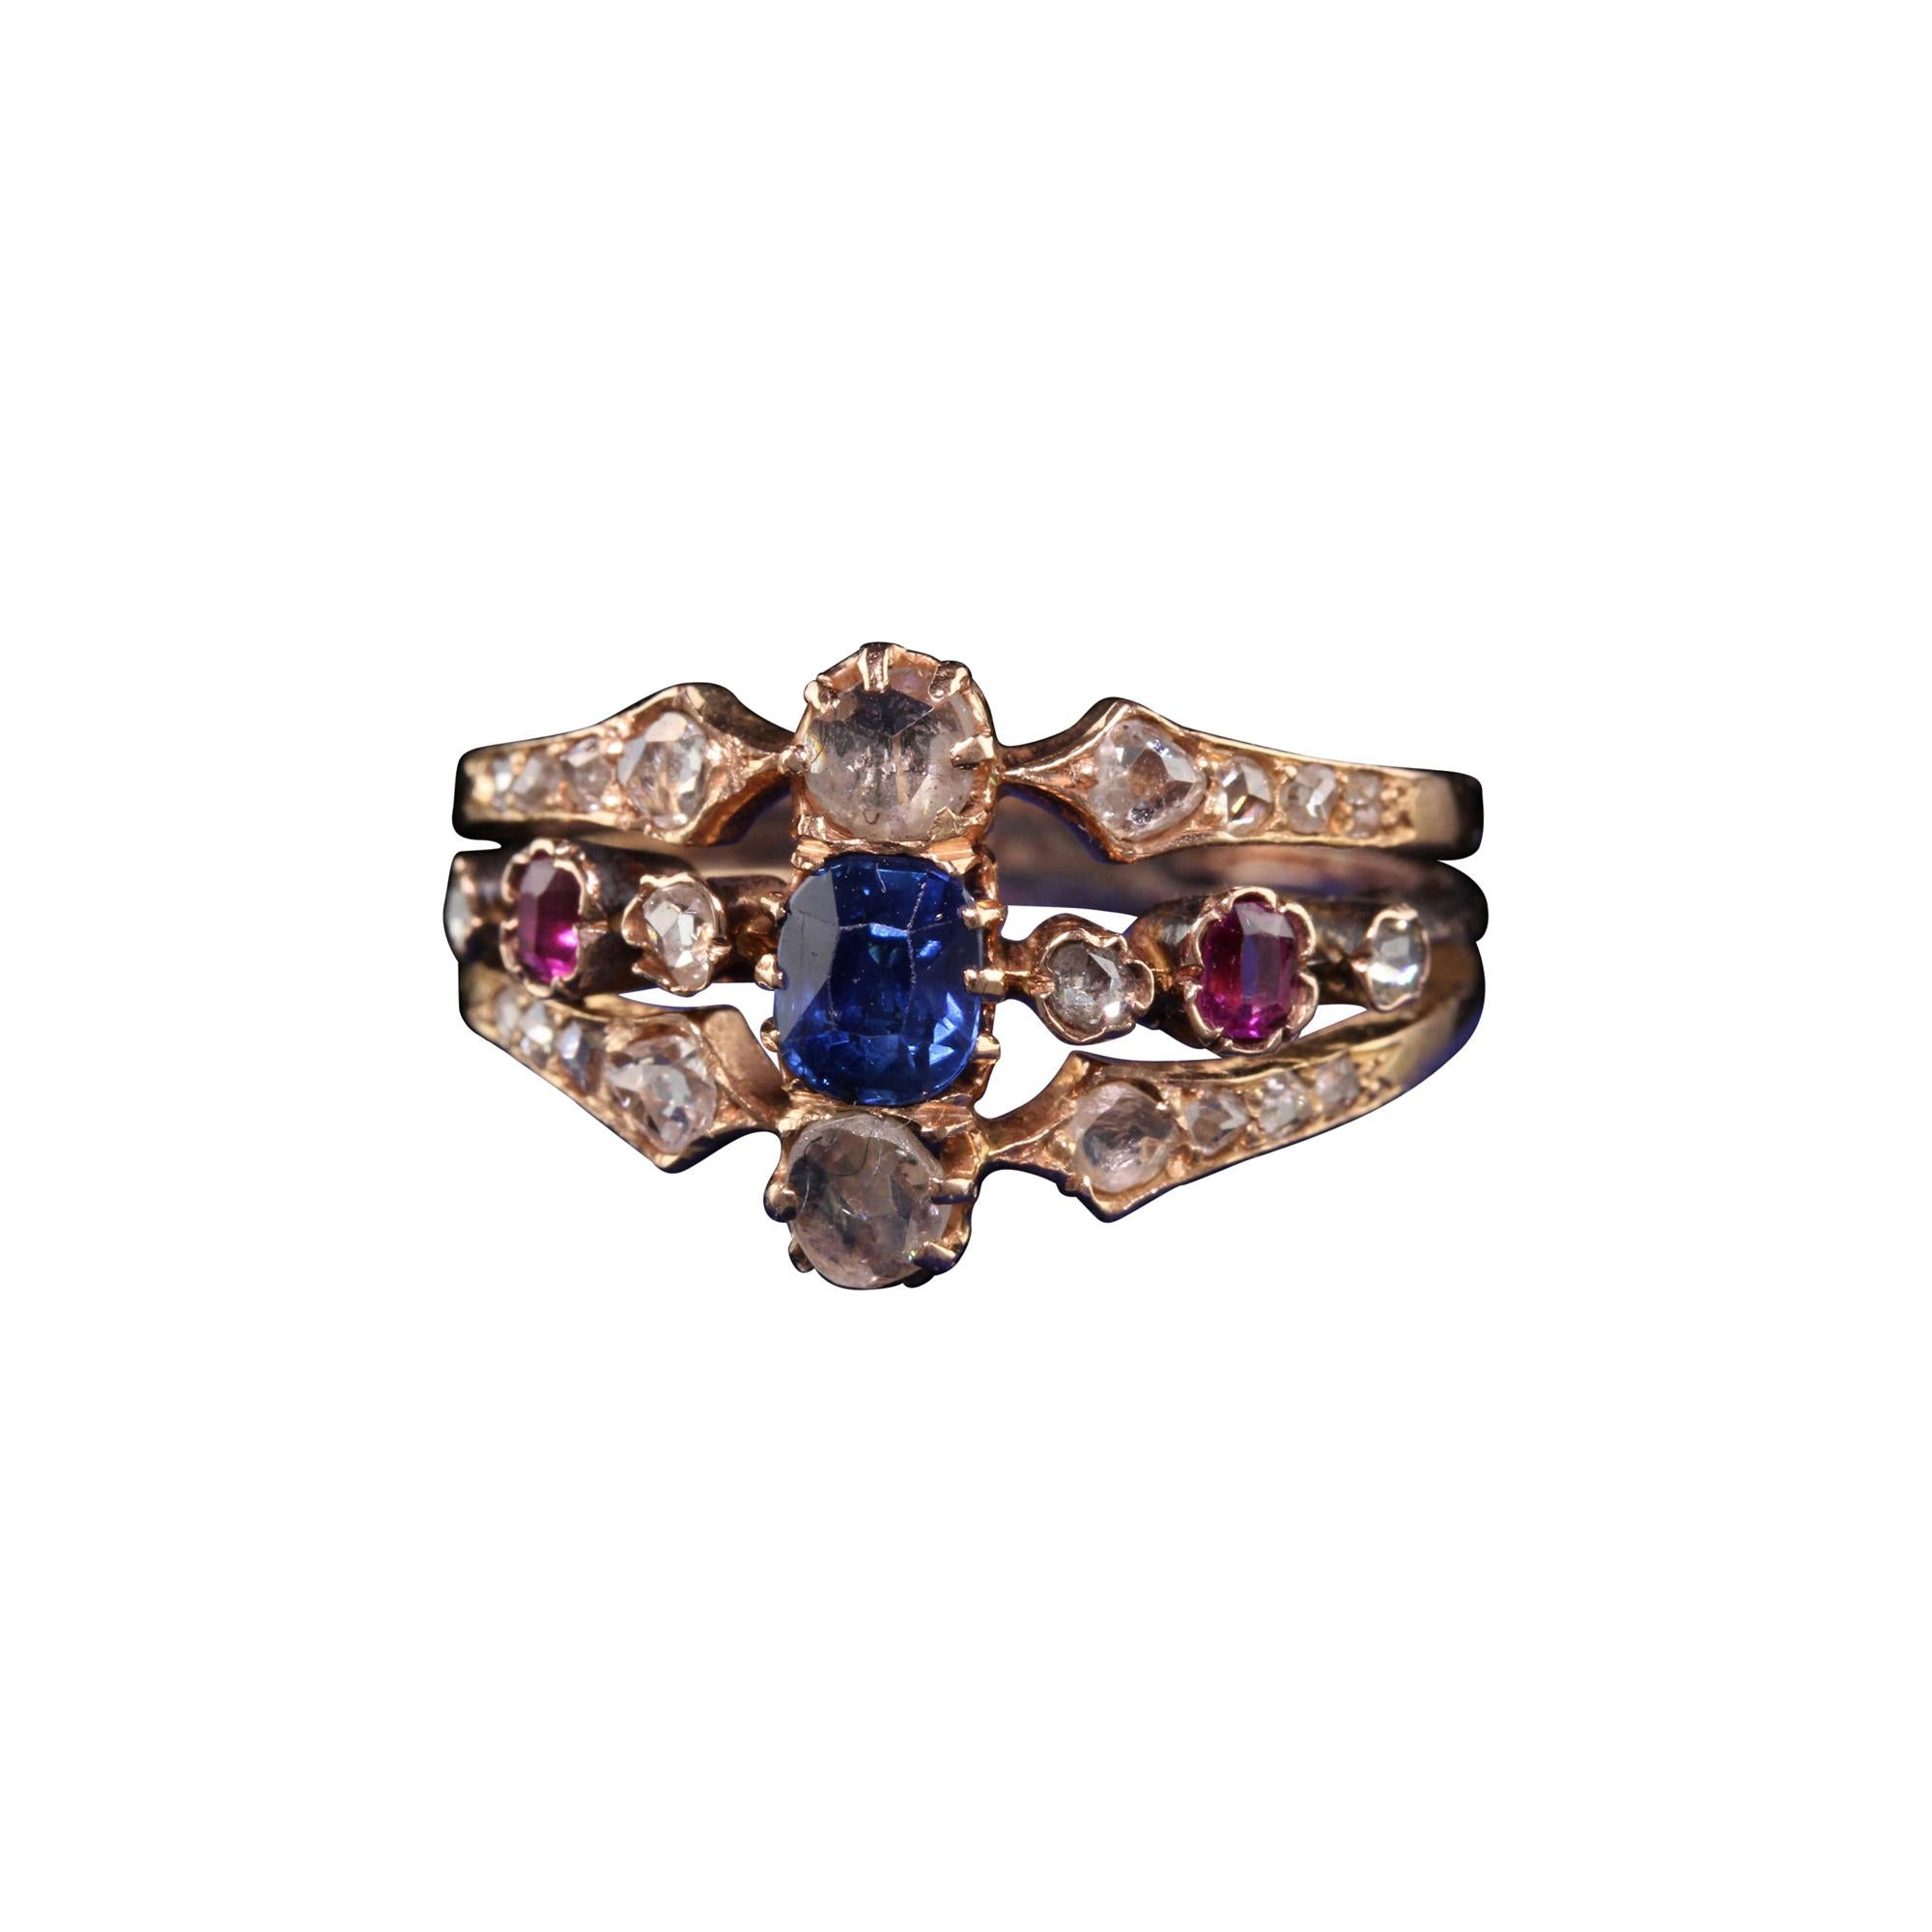 Antique Victorian 18k Rose Gold Rose Cut Diamond Sapphire and Ruby Ring